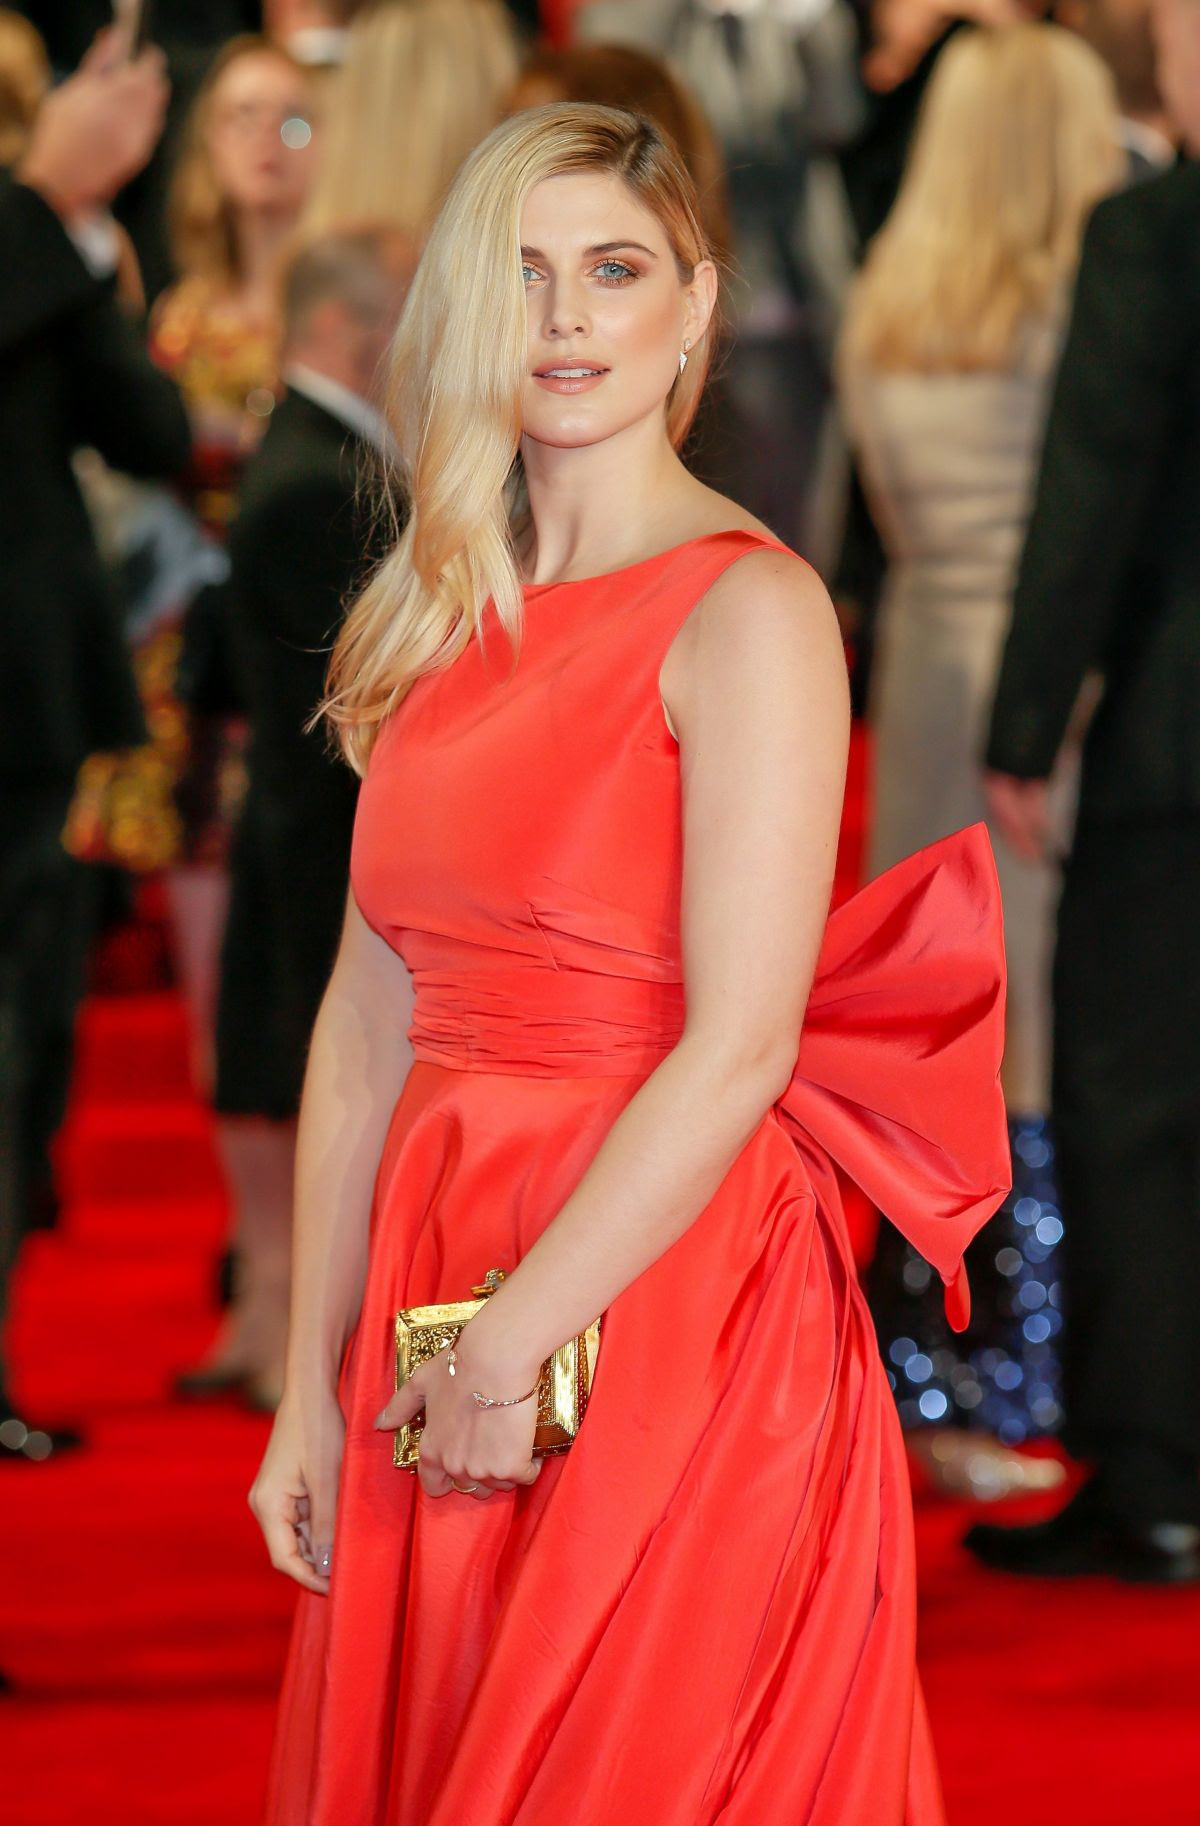 ASHLEY JAMES at Spectre Premiere in London 10/26/2015